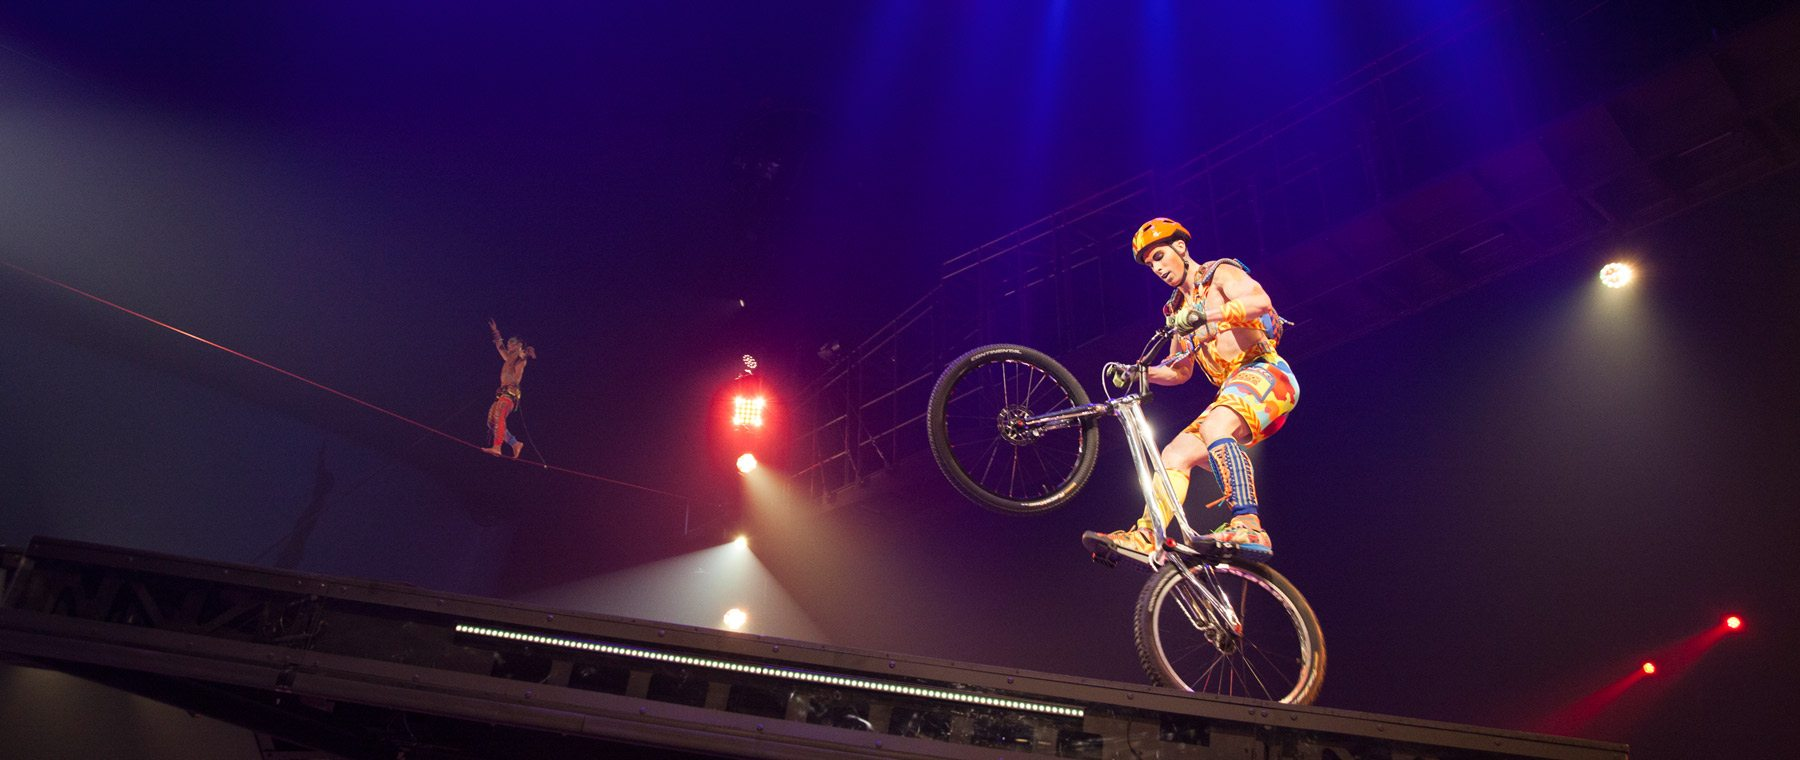 5 Things to Know About Cirque du Soleil's Volta